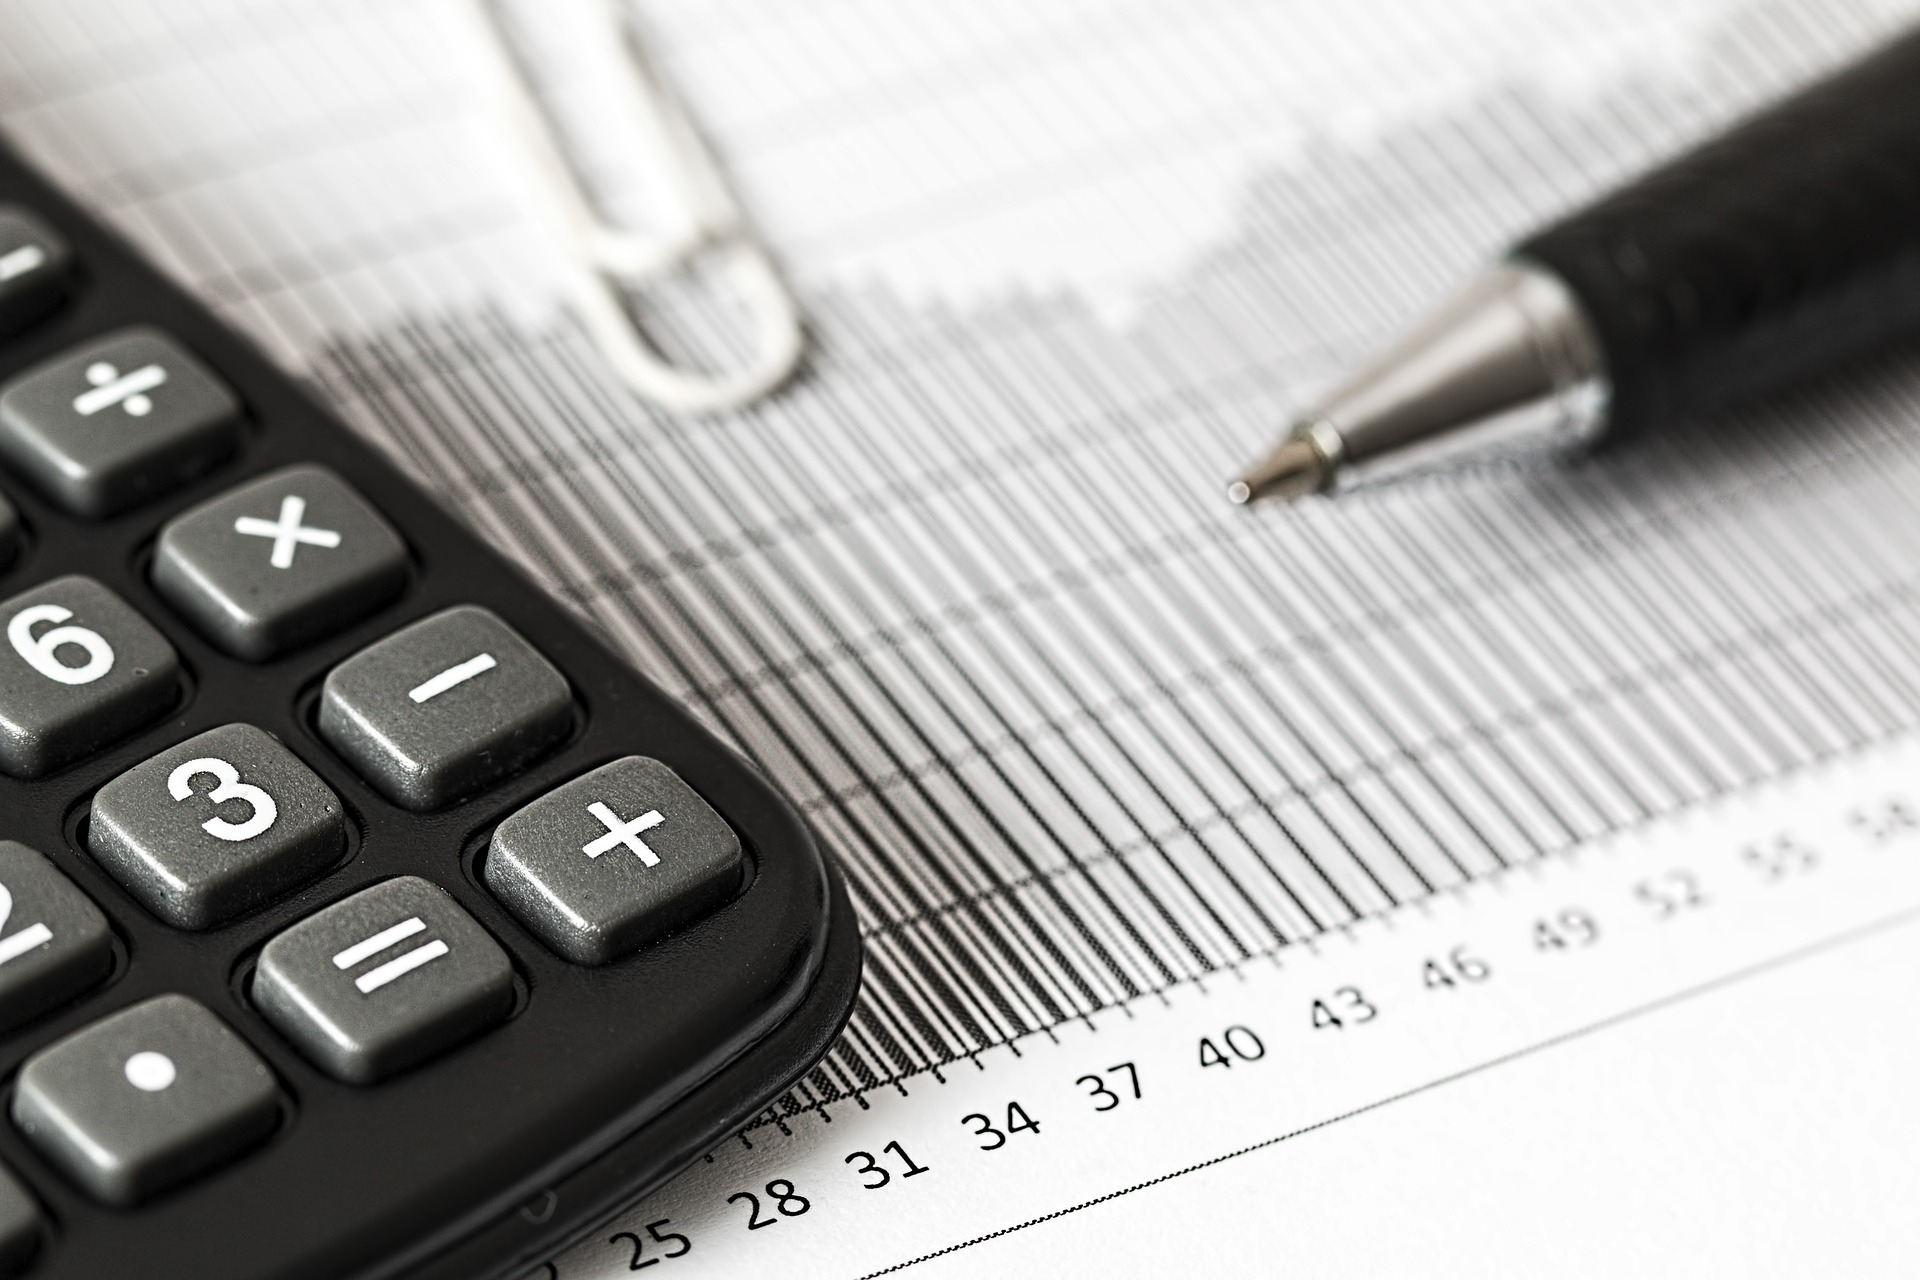 Accountants & Consultants - We are working with accountancy and consulting practices on a cost audit exercise that we believe will provide a very significant insight into the overheads that hold back businesses. We would welcome particpation of more such firms in this as we seek to lift the lid on inefficiency. If you would like to get involved, click here to contact us.